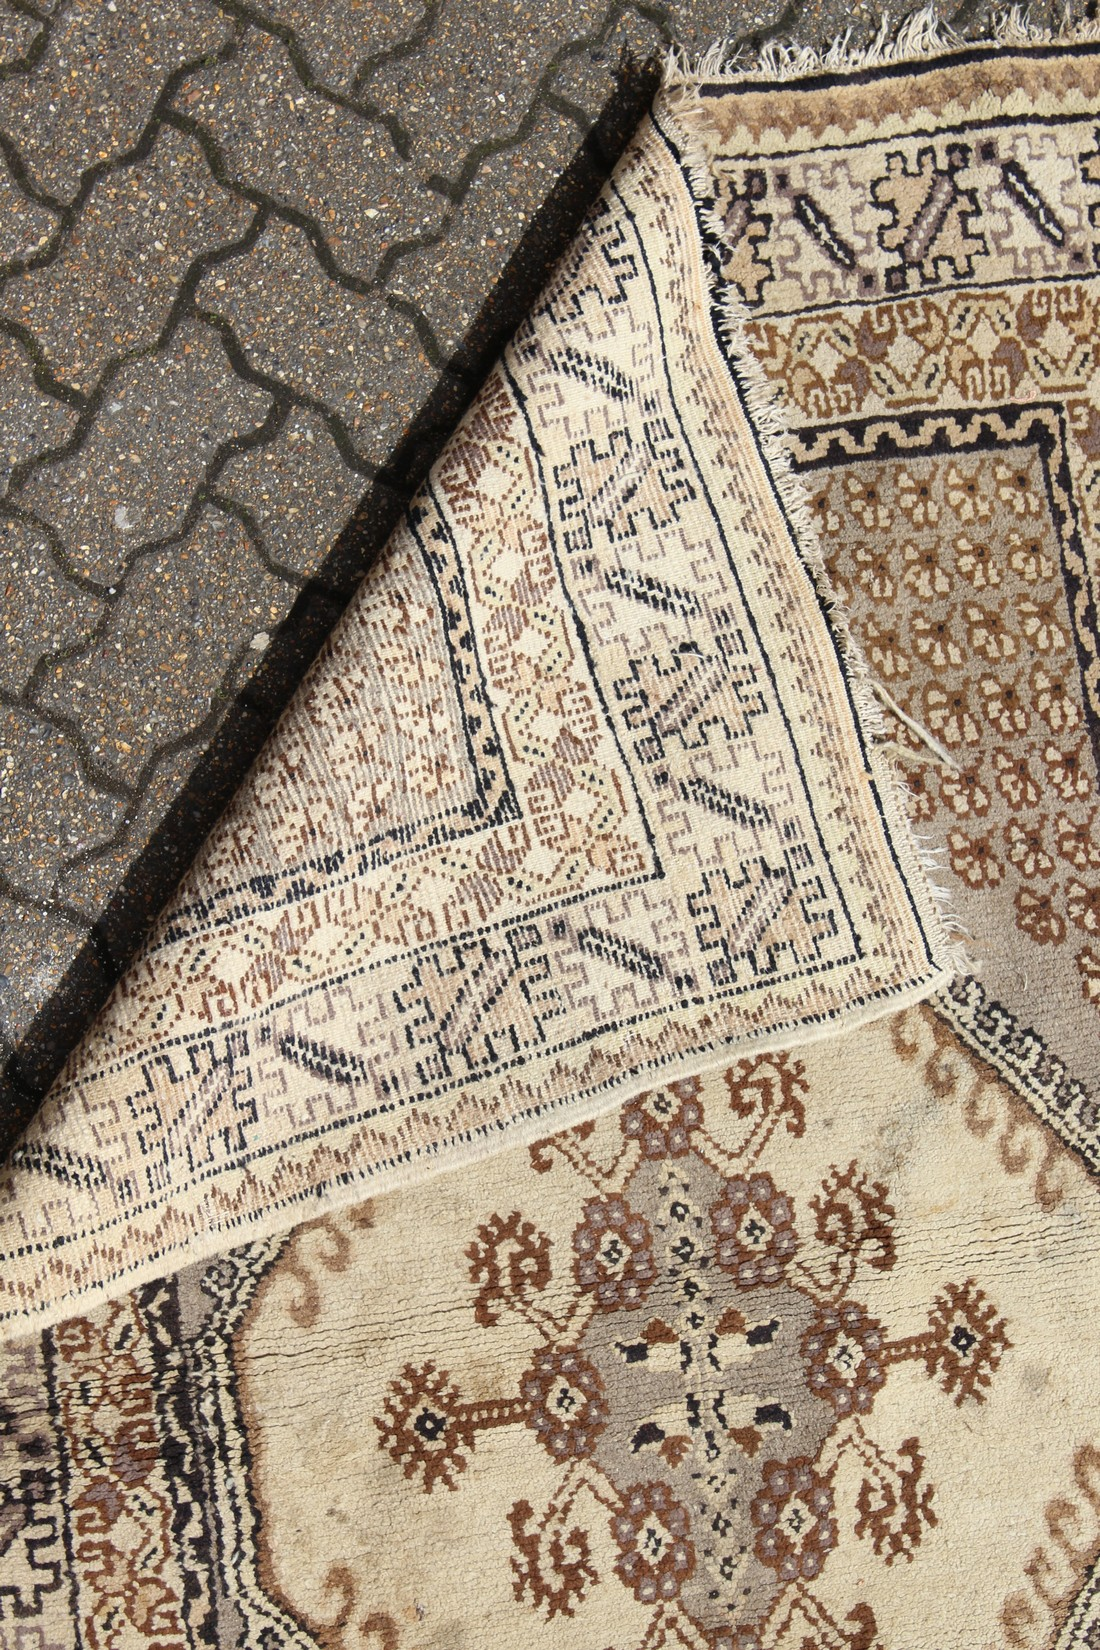 A PERSIAN RUG brown and cream with large medallions. 6ft 6ins long x 4ft 6ins wide - Image 2 of 2